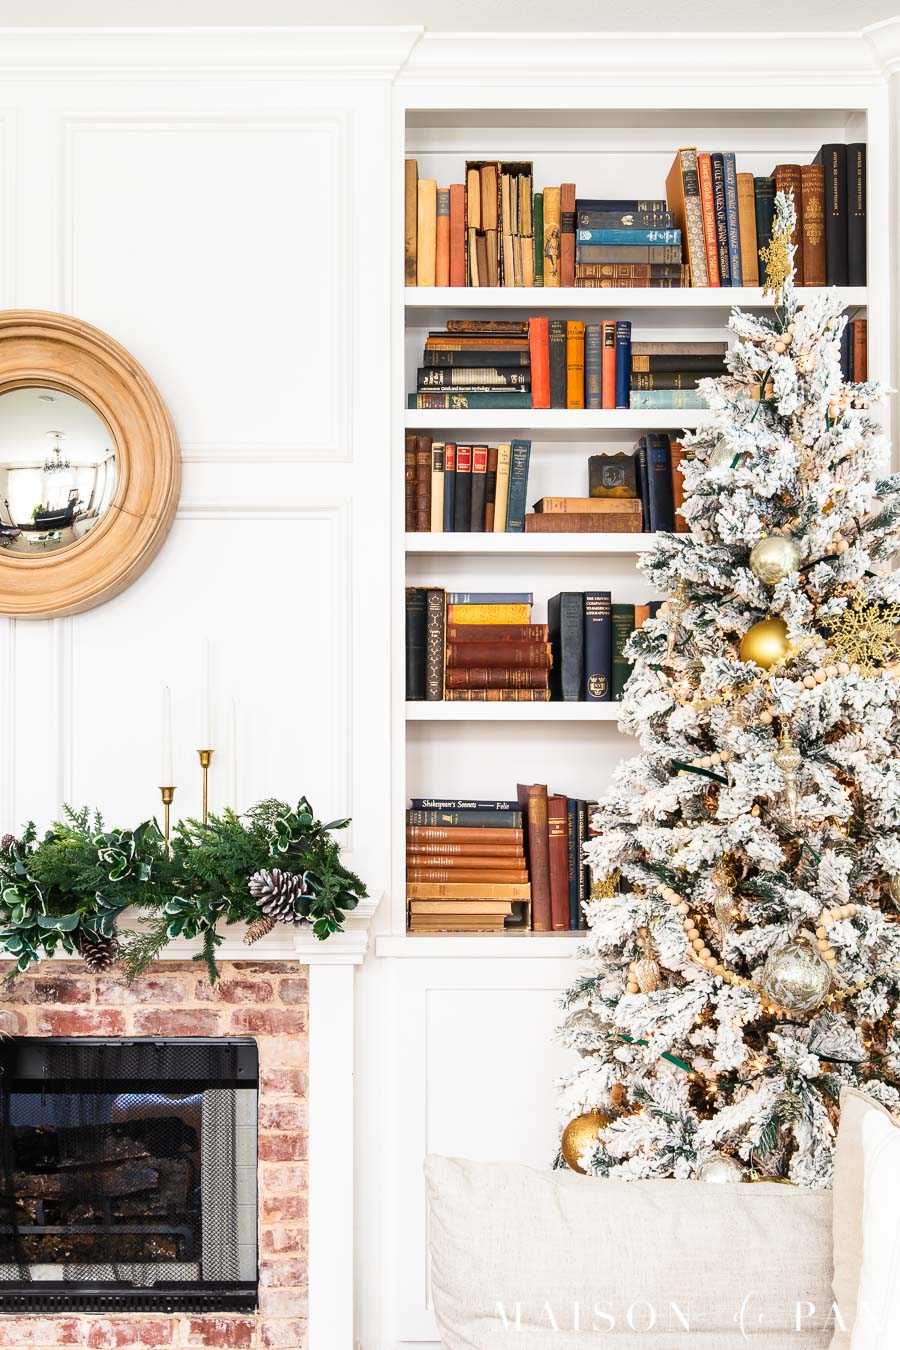 flocked tree with gold ornaments by fireplace | Maison de Pax